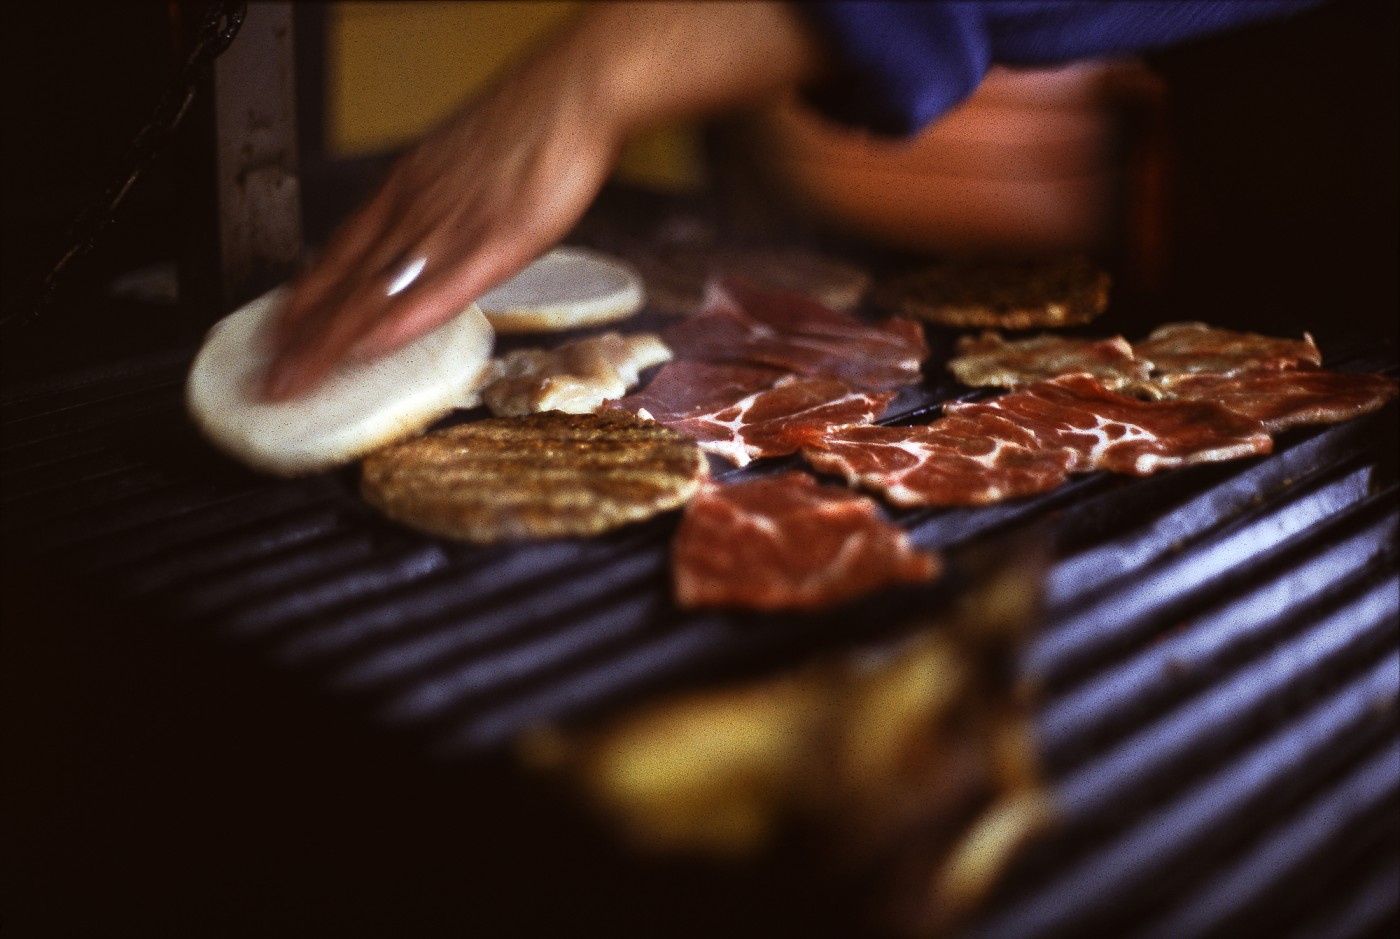 Real street meat can't be beat: bondiola & burgers sizzling at an outdoor parrilla kiosk in Buenos Aires (Astrid Idlewild)